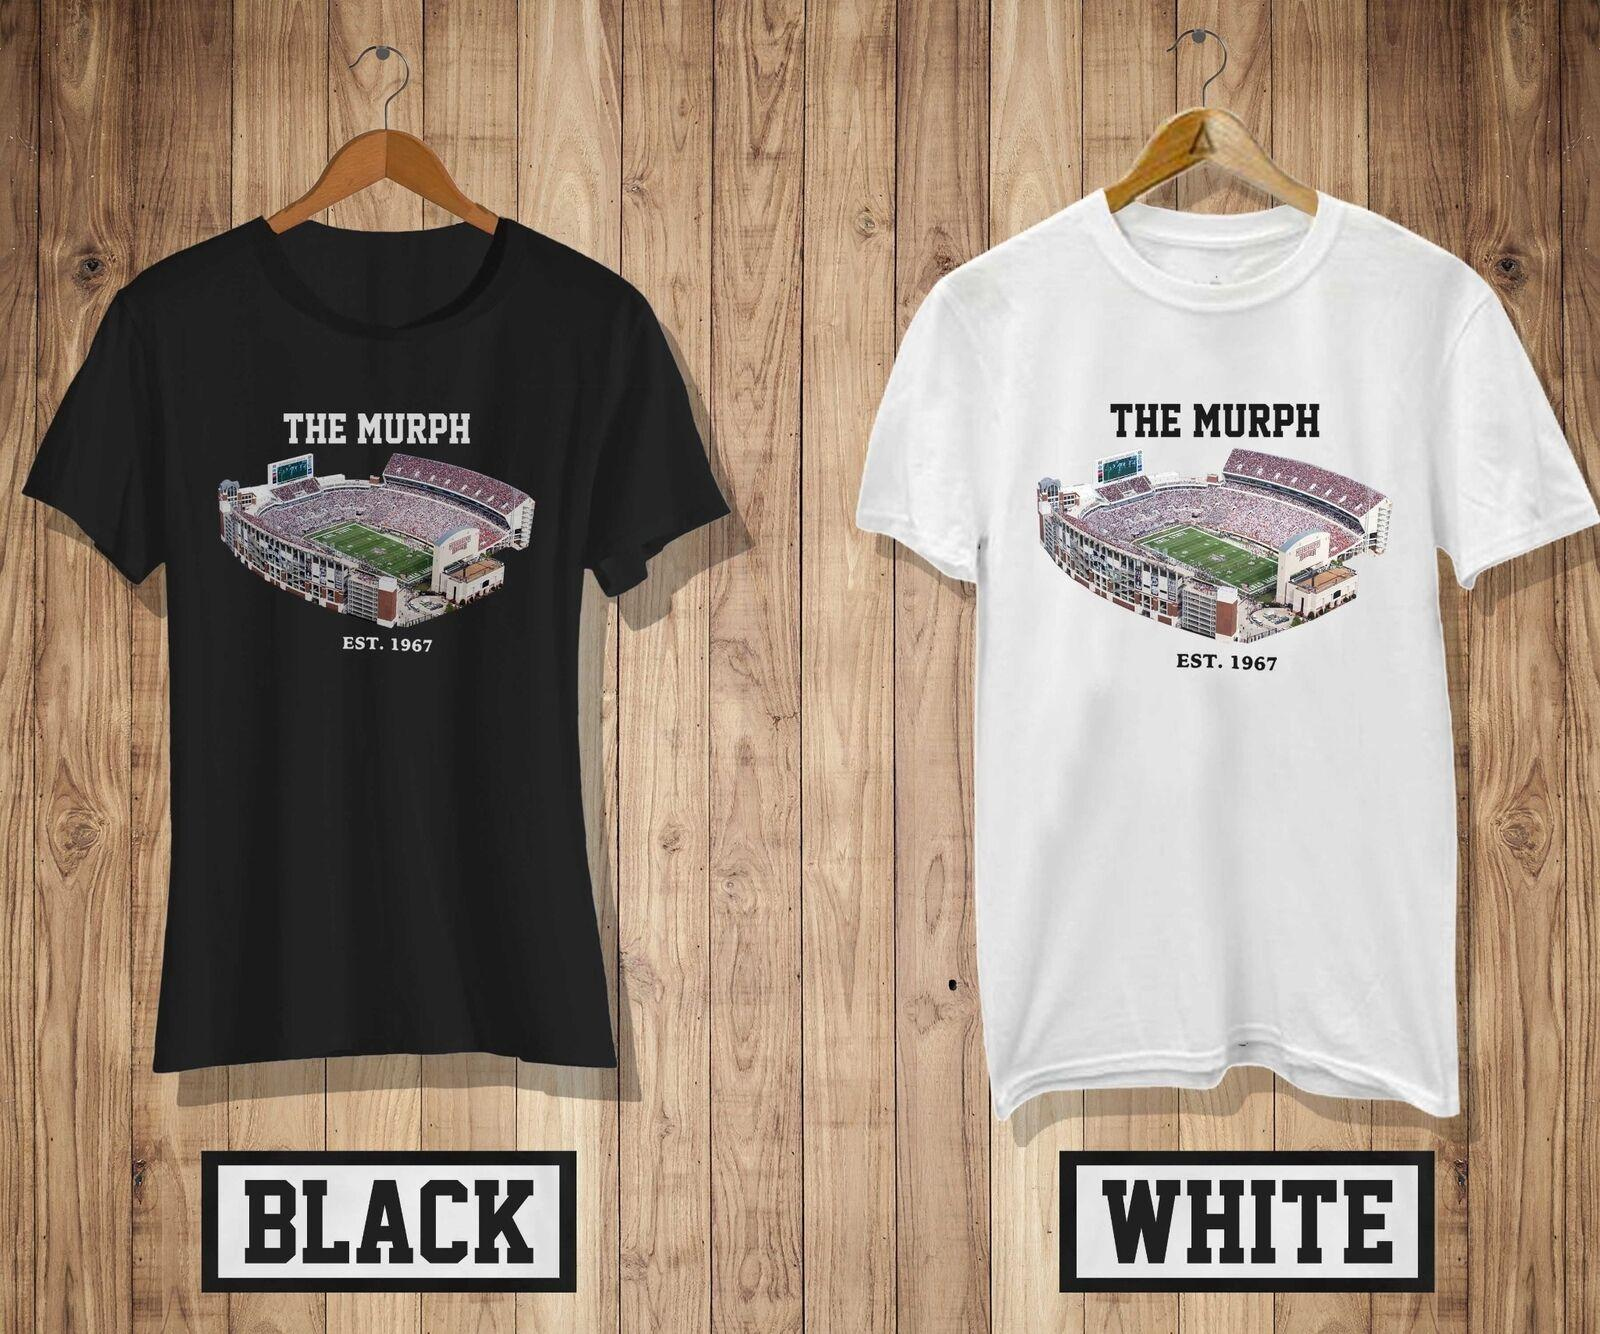 fe0bb431554aab THE MURPH JACK MURPHY STADIUM SAN T SHIRT QUALCOMM DIEGO LA CHARGERS NEW 2  GP1 Funny Unisex Casual Top T Shirts Best Best Funny Shirts From Wrapfairy